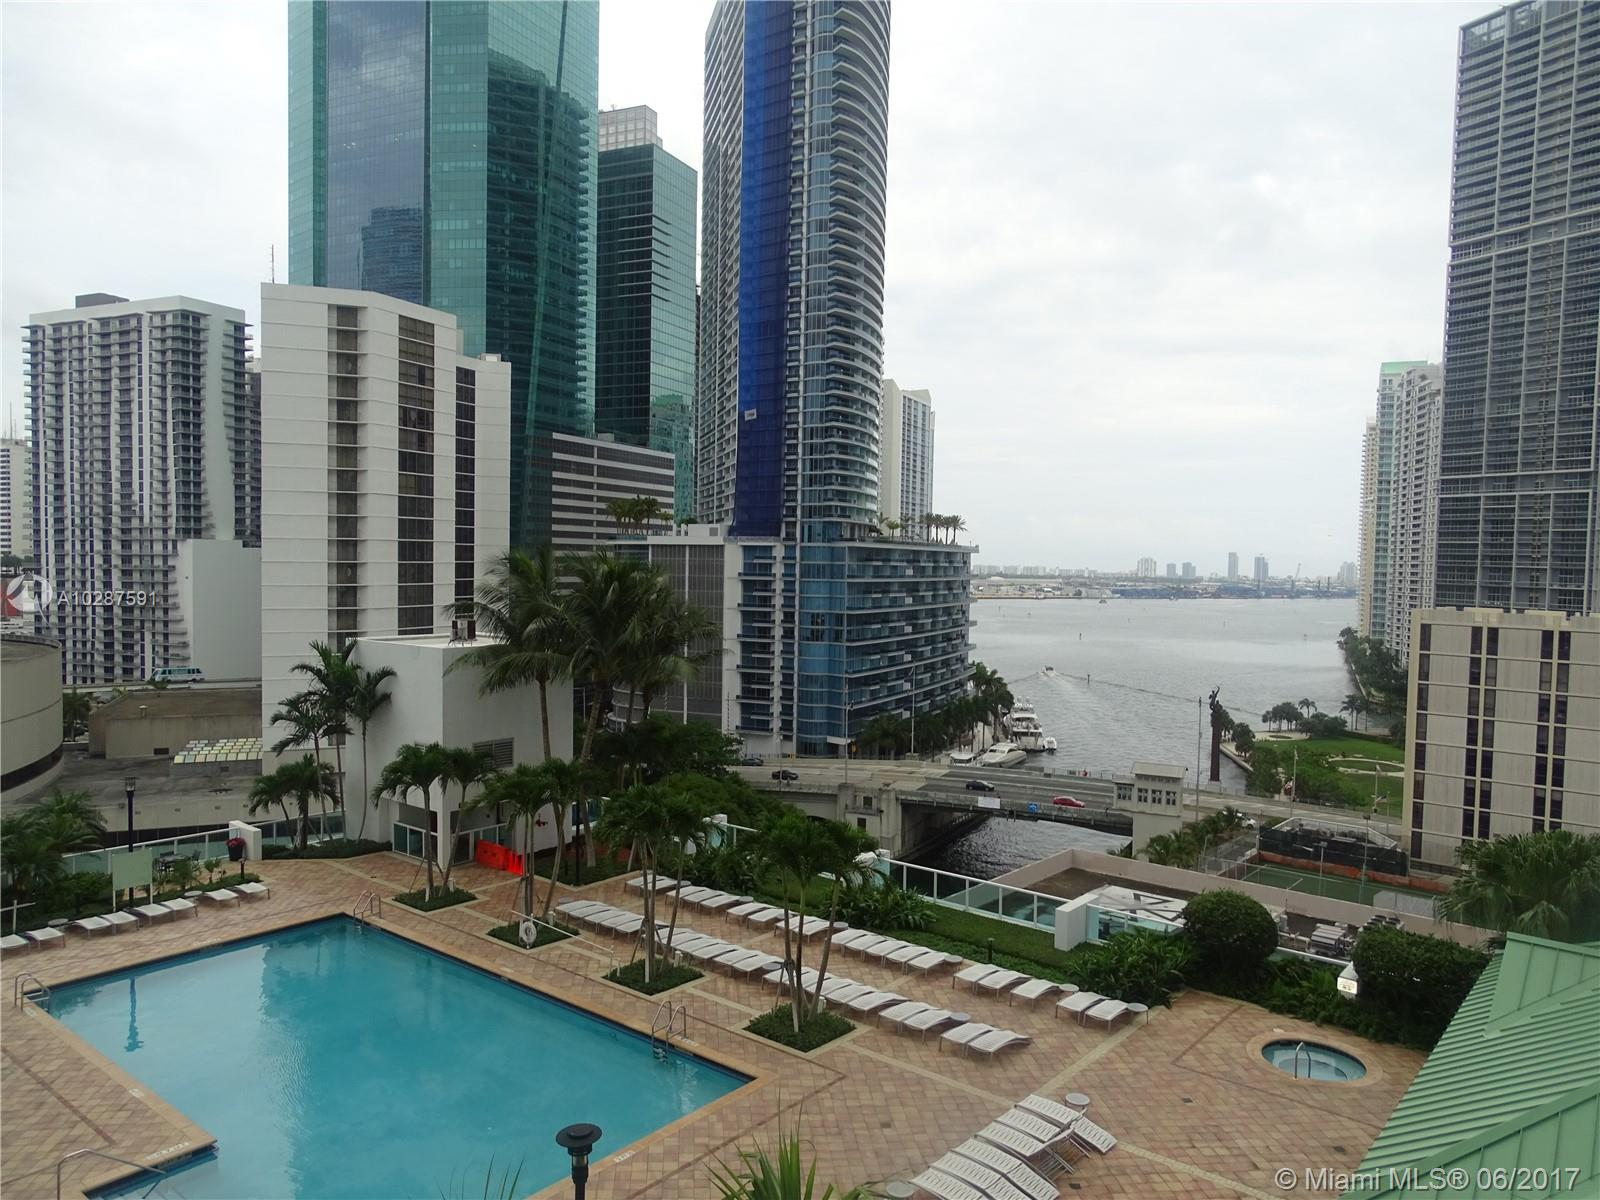 Brickell on the River North image #33